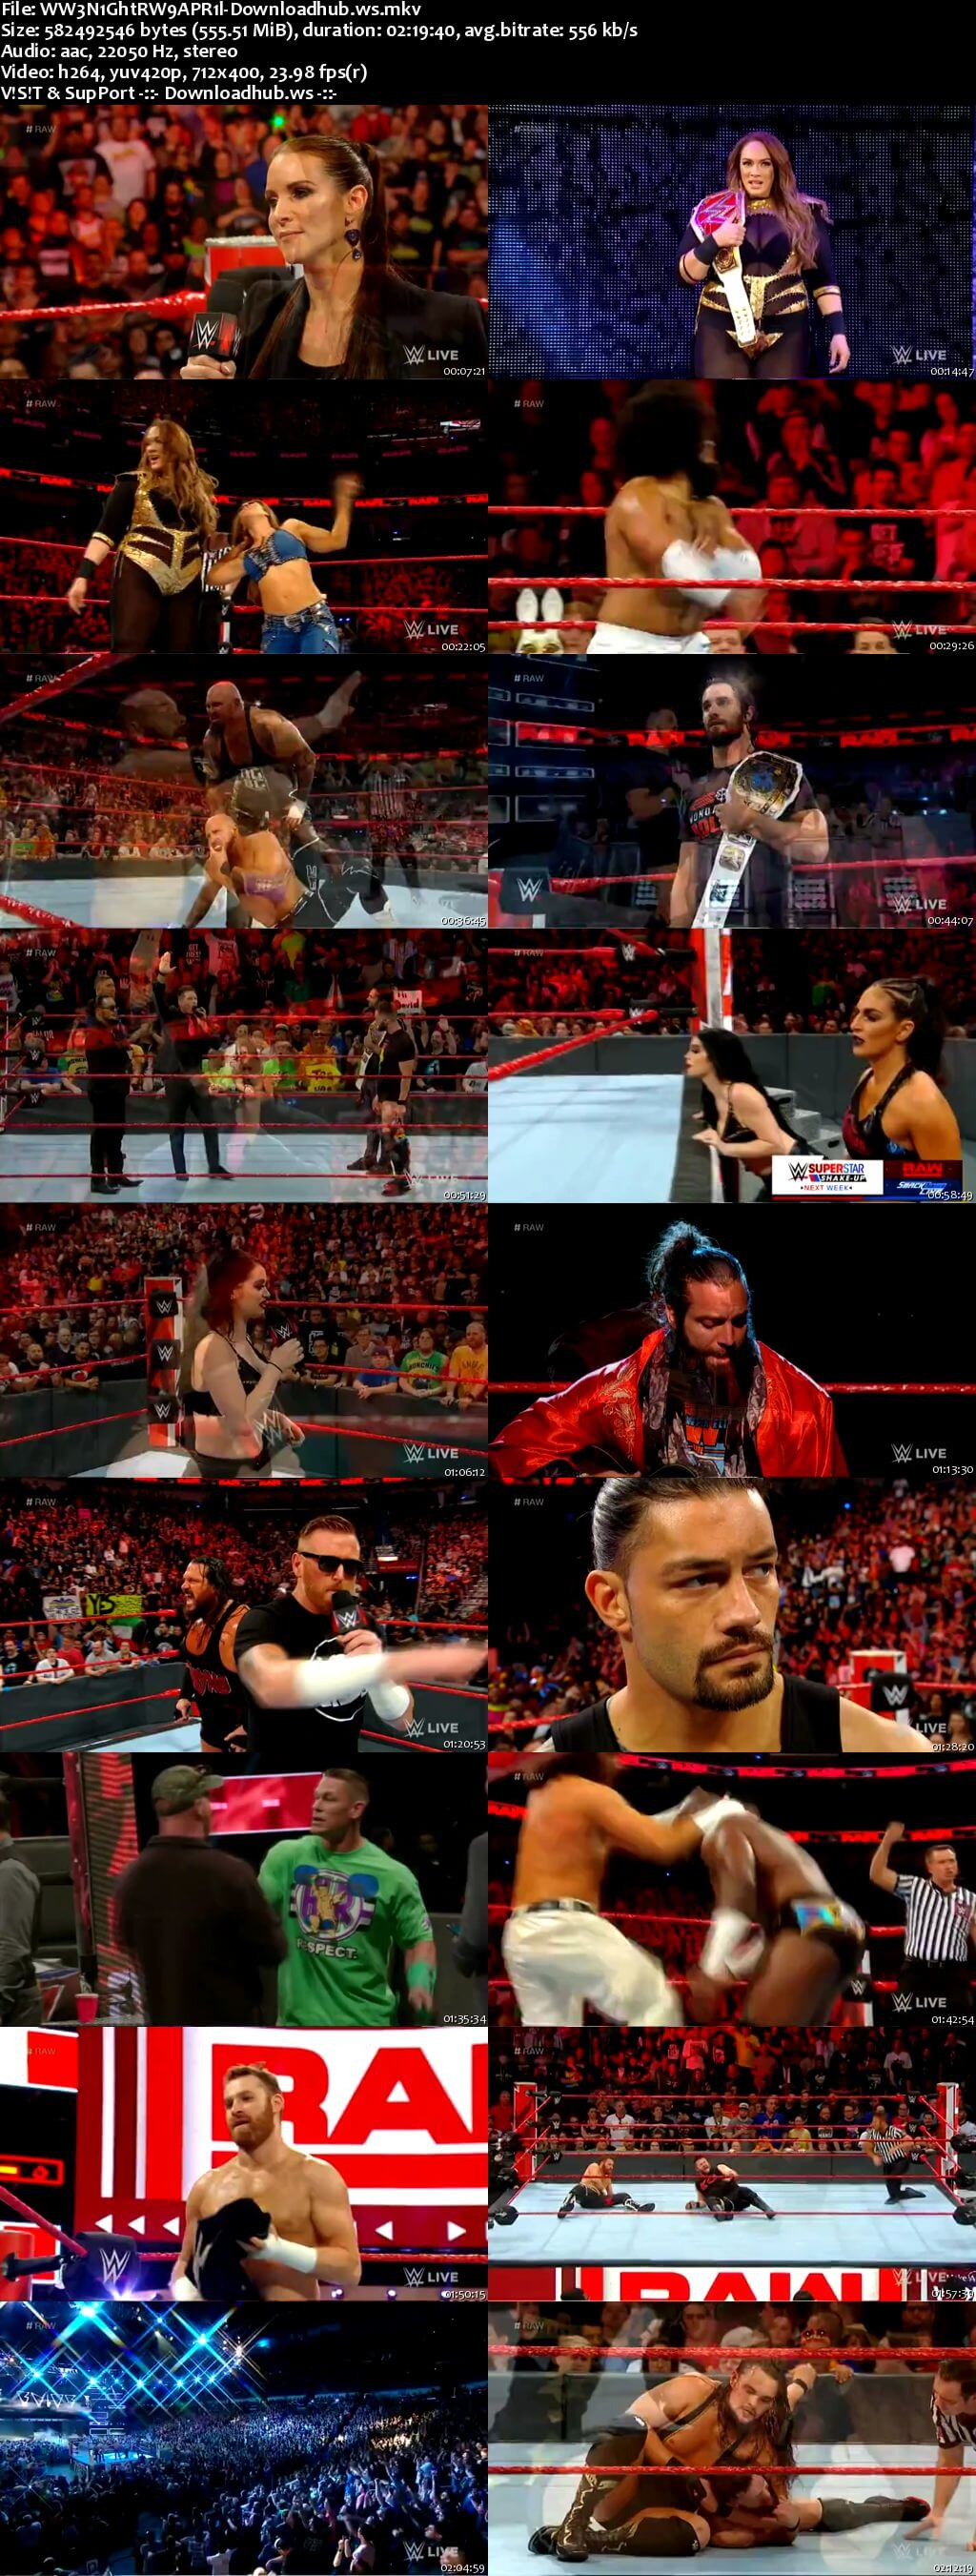 WWE Monday Night Raw 07 April 2018 480p HDTV Download